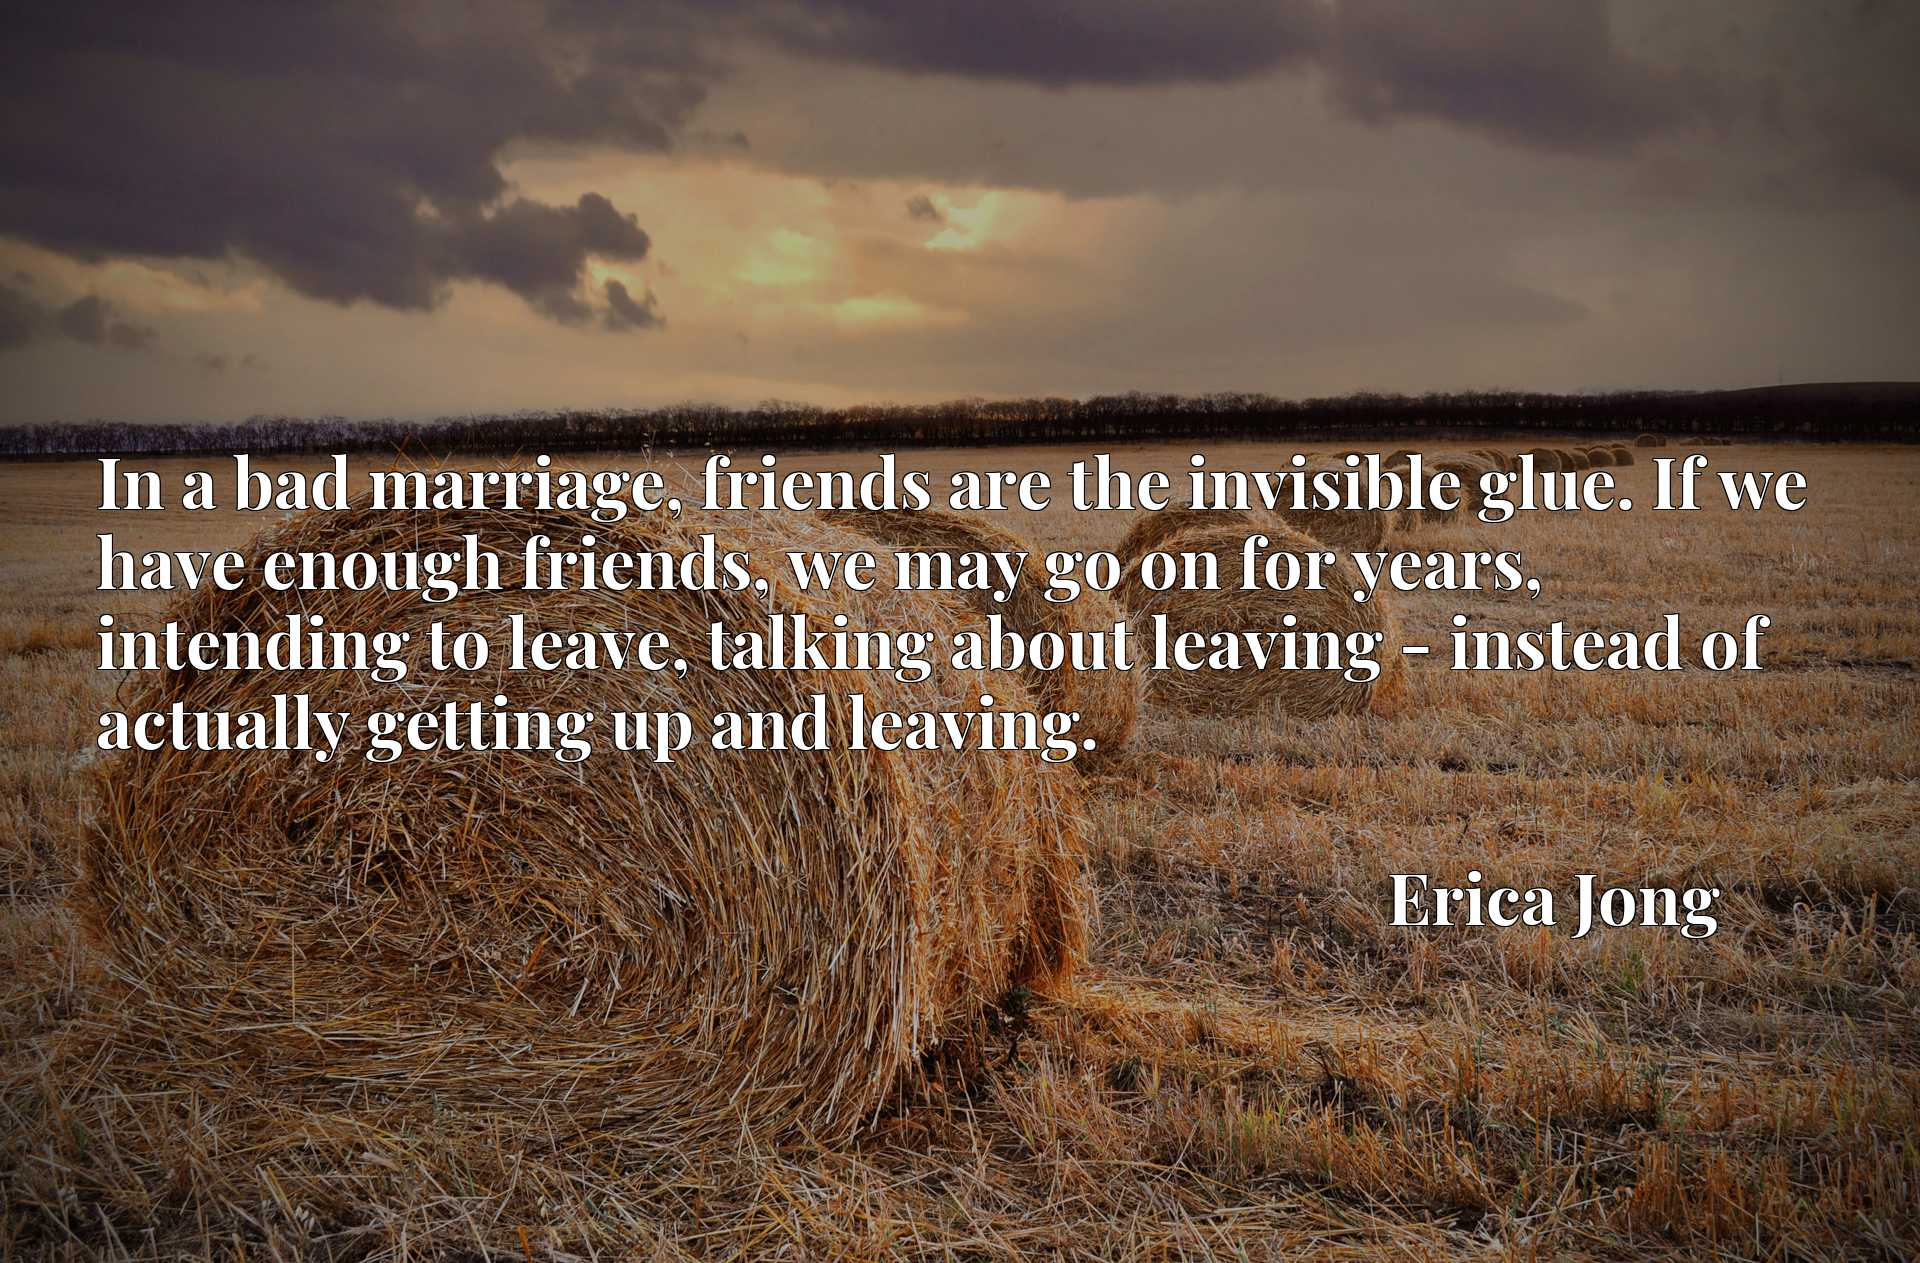 In a bad marriage, friends are the invisible glue. If we have enough friends, we may go on for years, intending to leave, talking about leaving - instead of actually getting up and leaving.